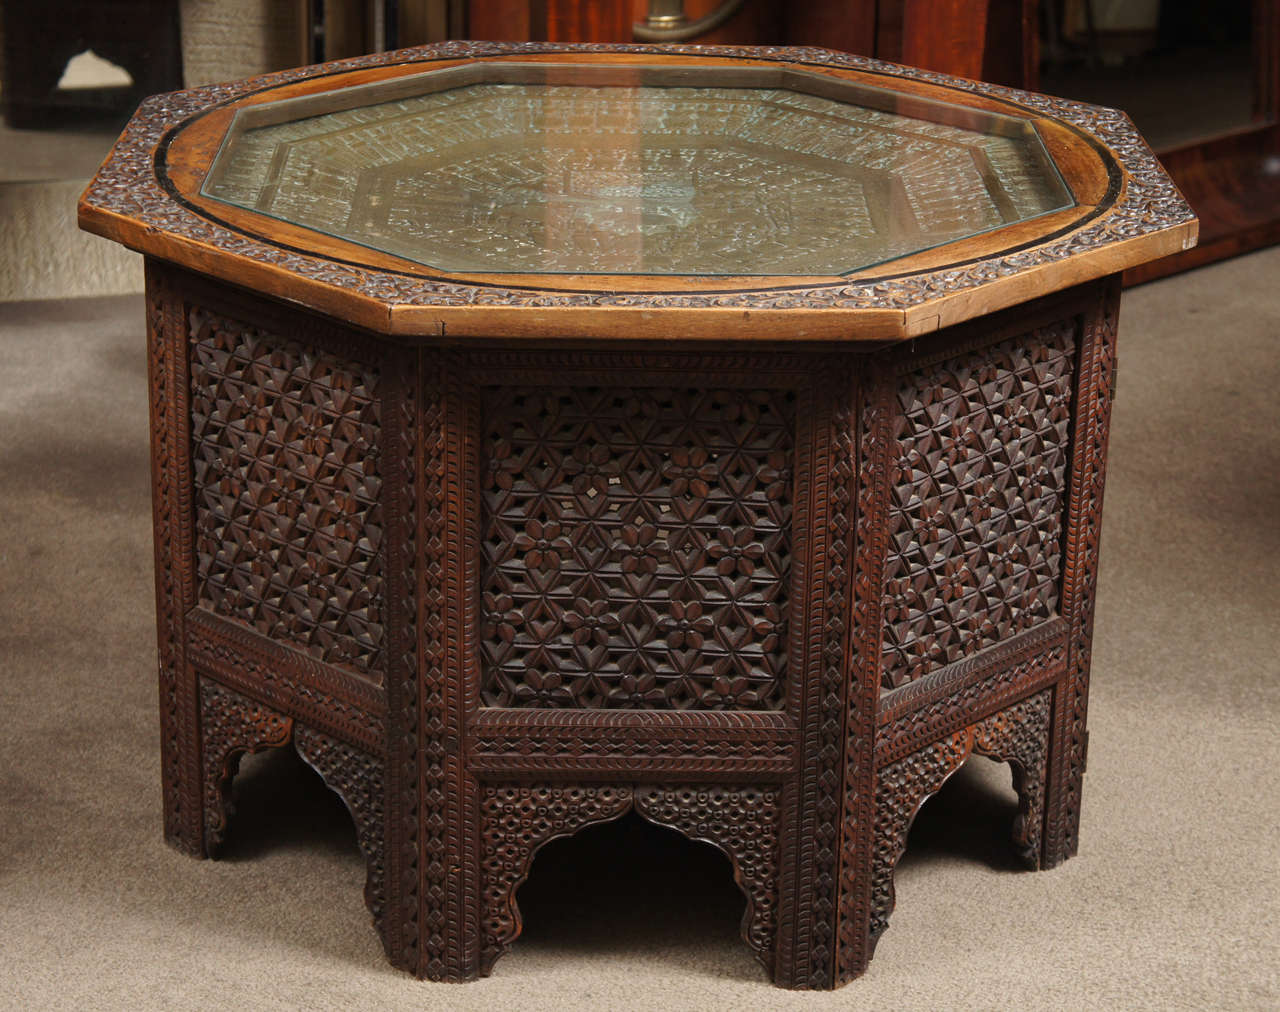 Carved Wood Indian Side Table With Glass Top At 1stdibs